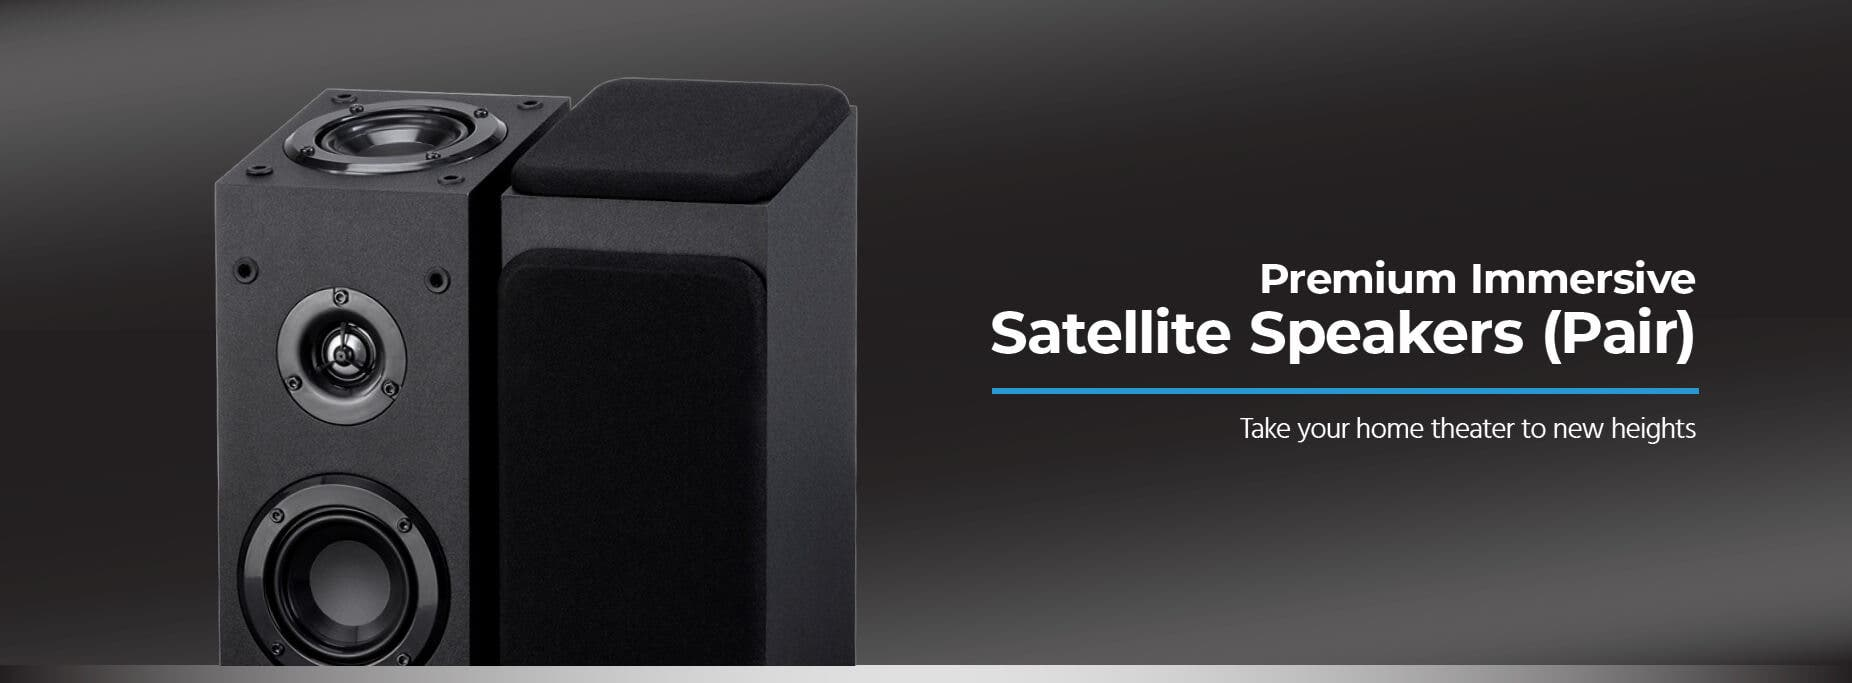 Immersive Satellite Speakers